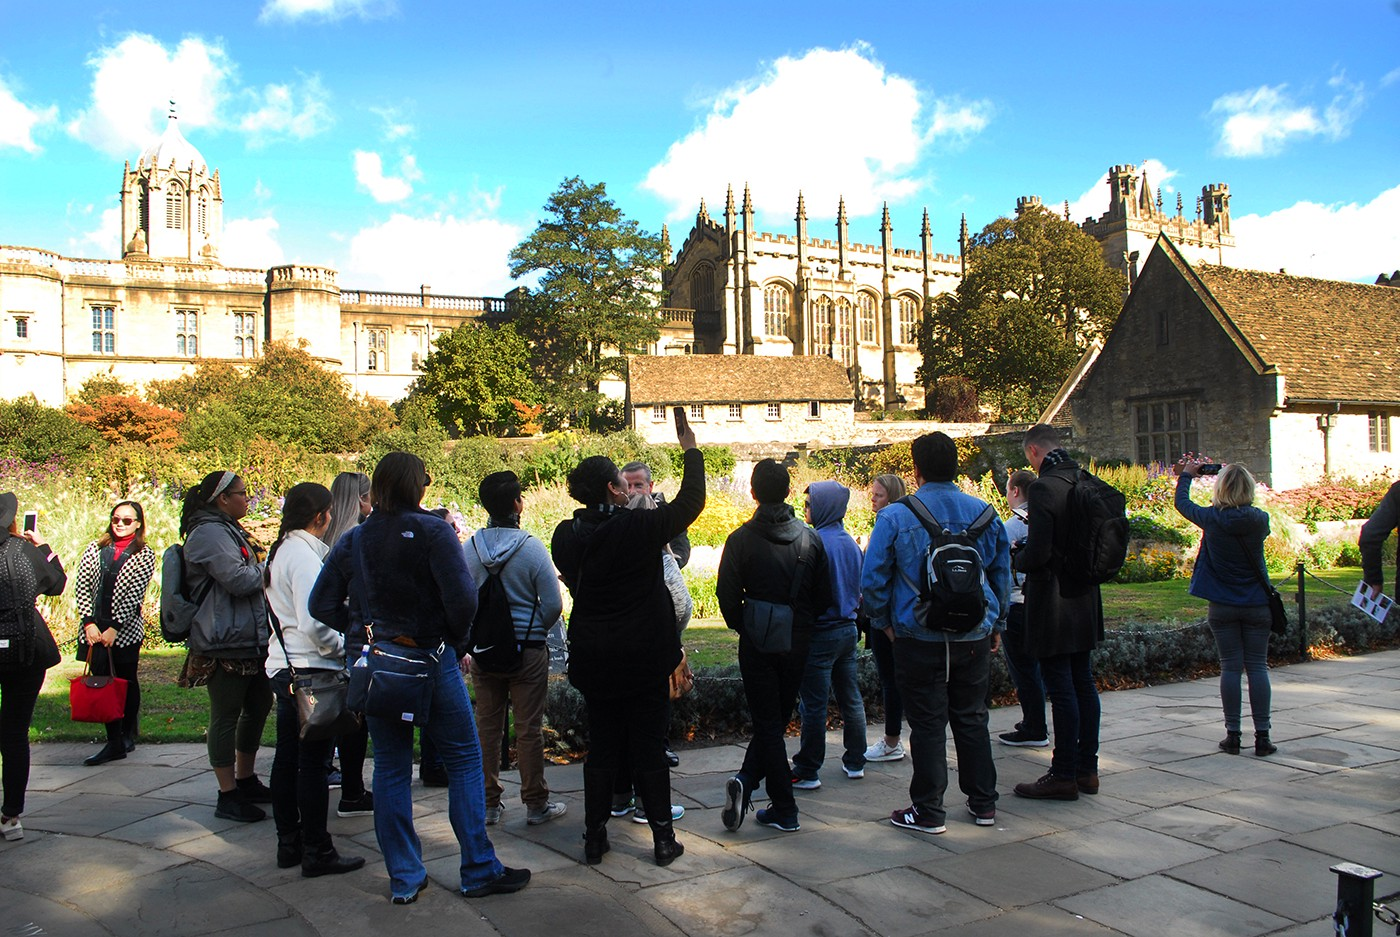 A group of tourists listening to a tour guide in the gardens of an Oxford college